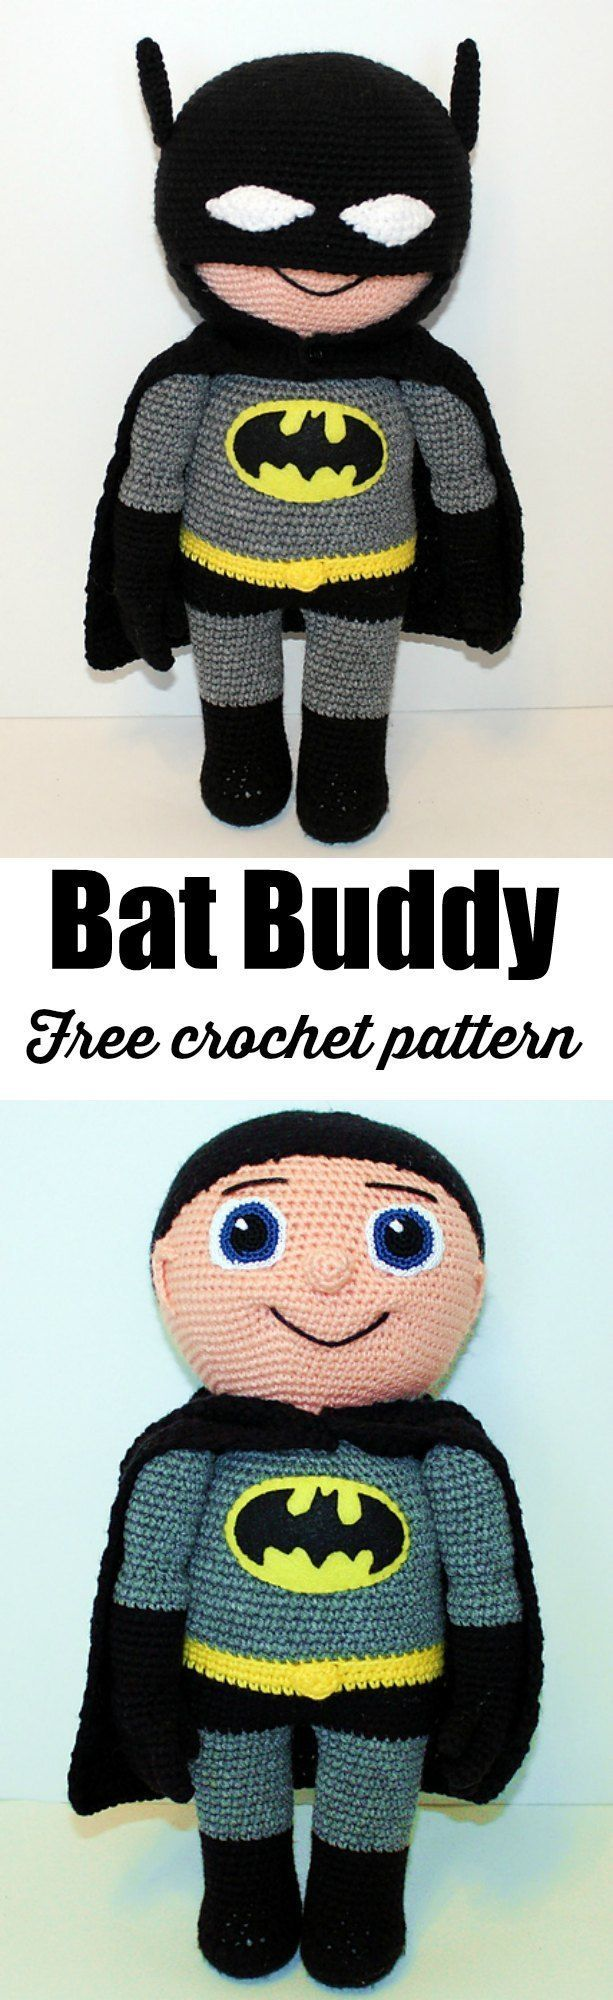 Free Bat Buddy crochet pattern, amigurumi doll.